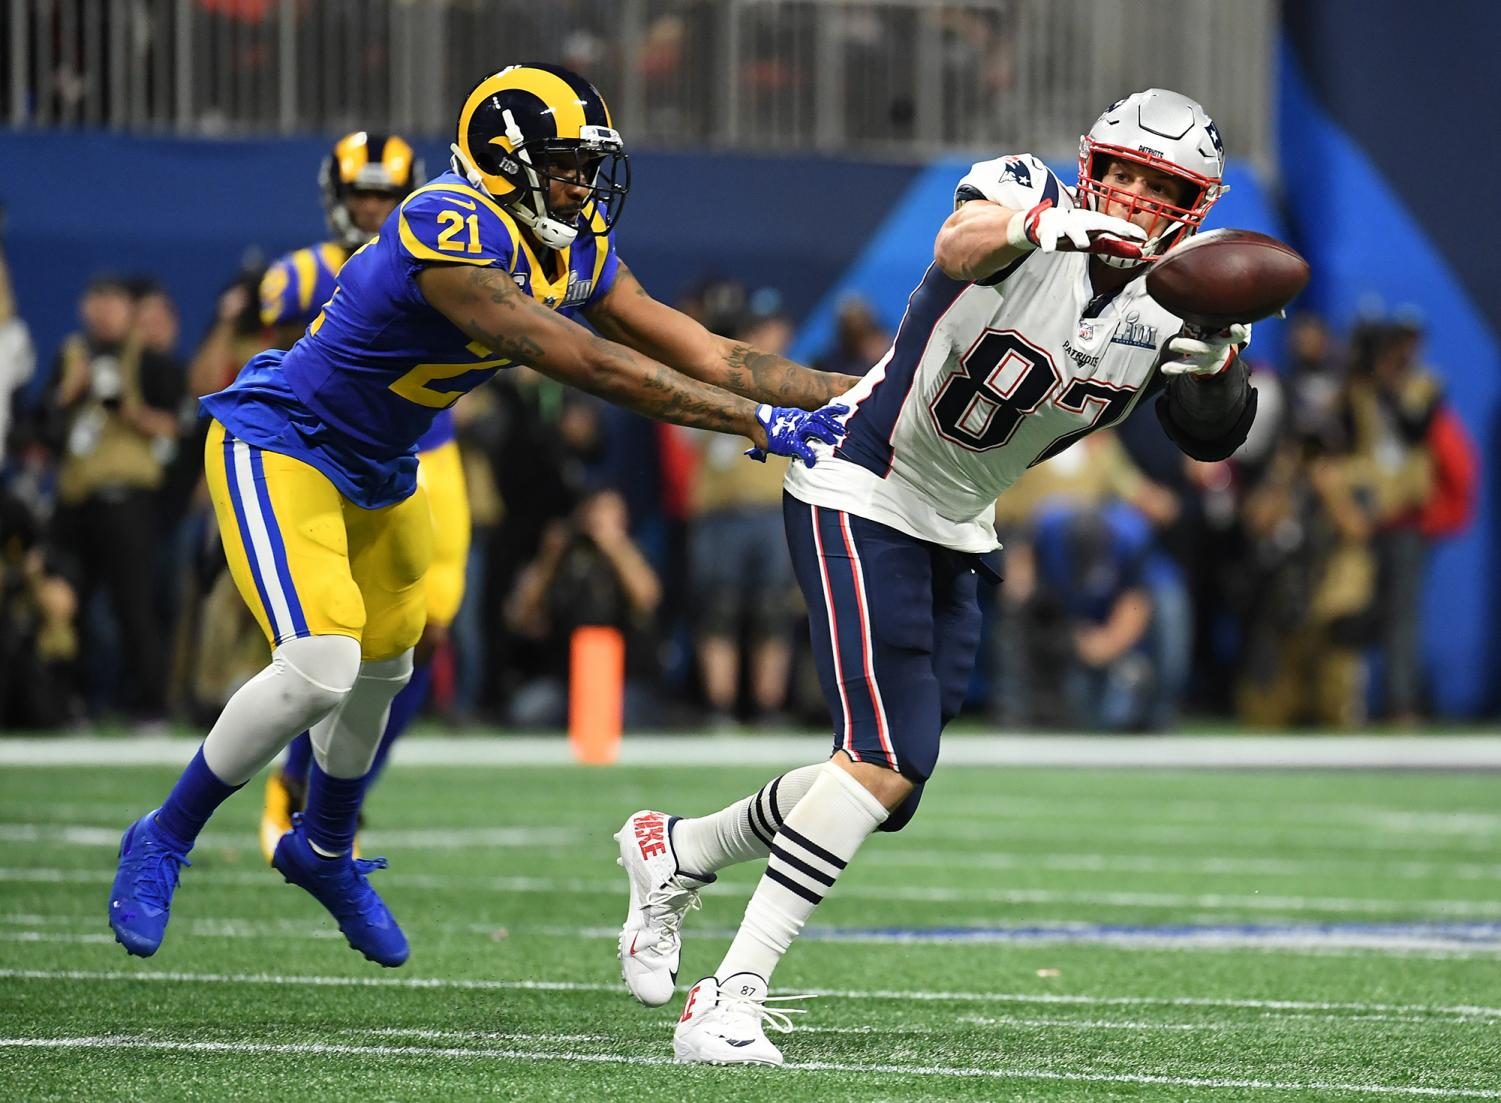 New England Patriots tight end Rob Gronkowski (87) can't catch the pass as the Los Angeles Rams' Aqib Talib covers in the first quarter during Super Bowl LIII at Mercedes-Benz Stadium in Atlanta on Sunday, Feb. 3, 2019. (Wally Skalij/Los Angeles Times/TNS)